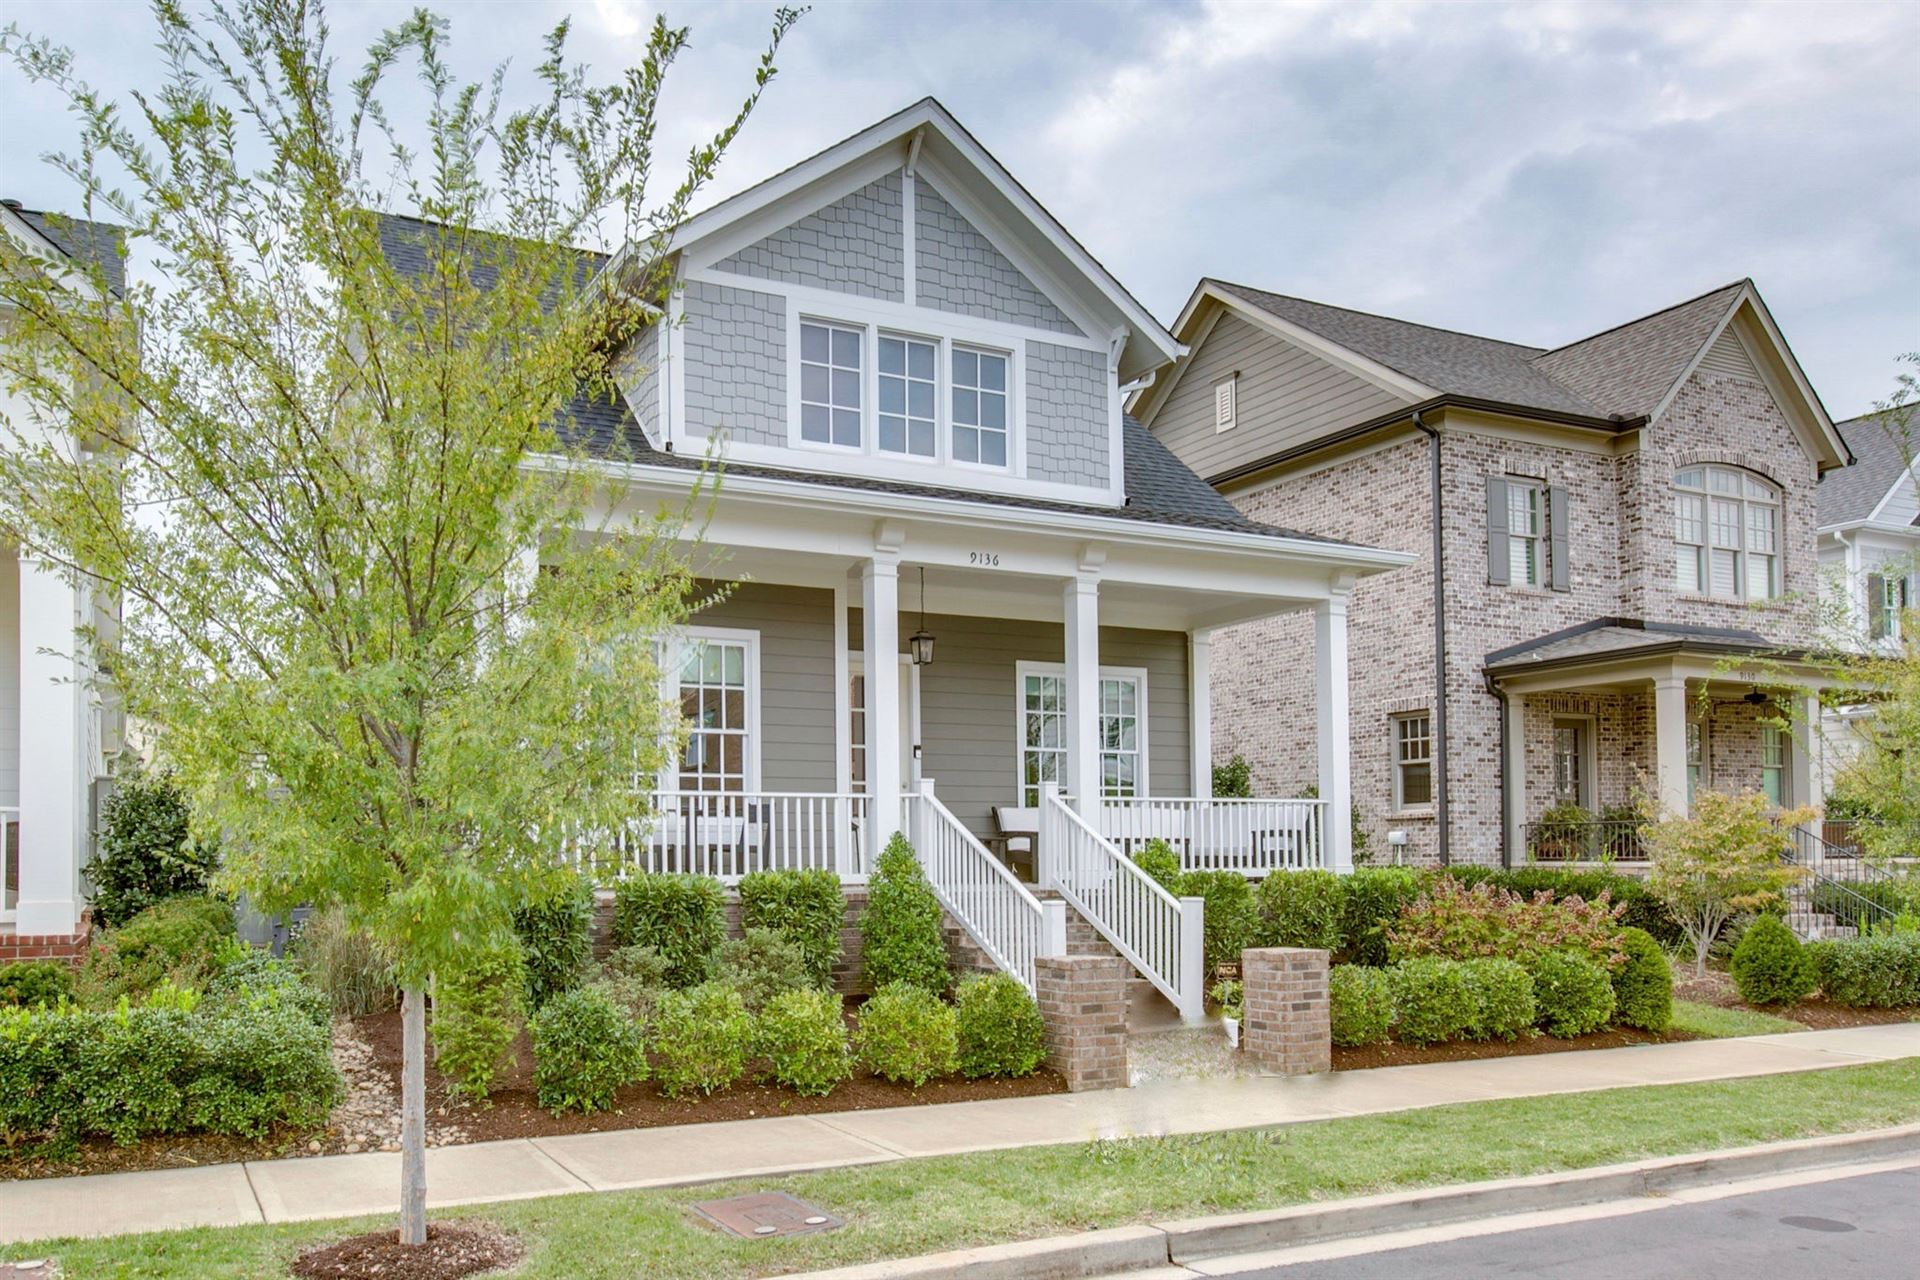 Photo of 9136 Keats St, Franklin, TN 37064 (MLS # 2150250)